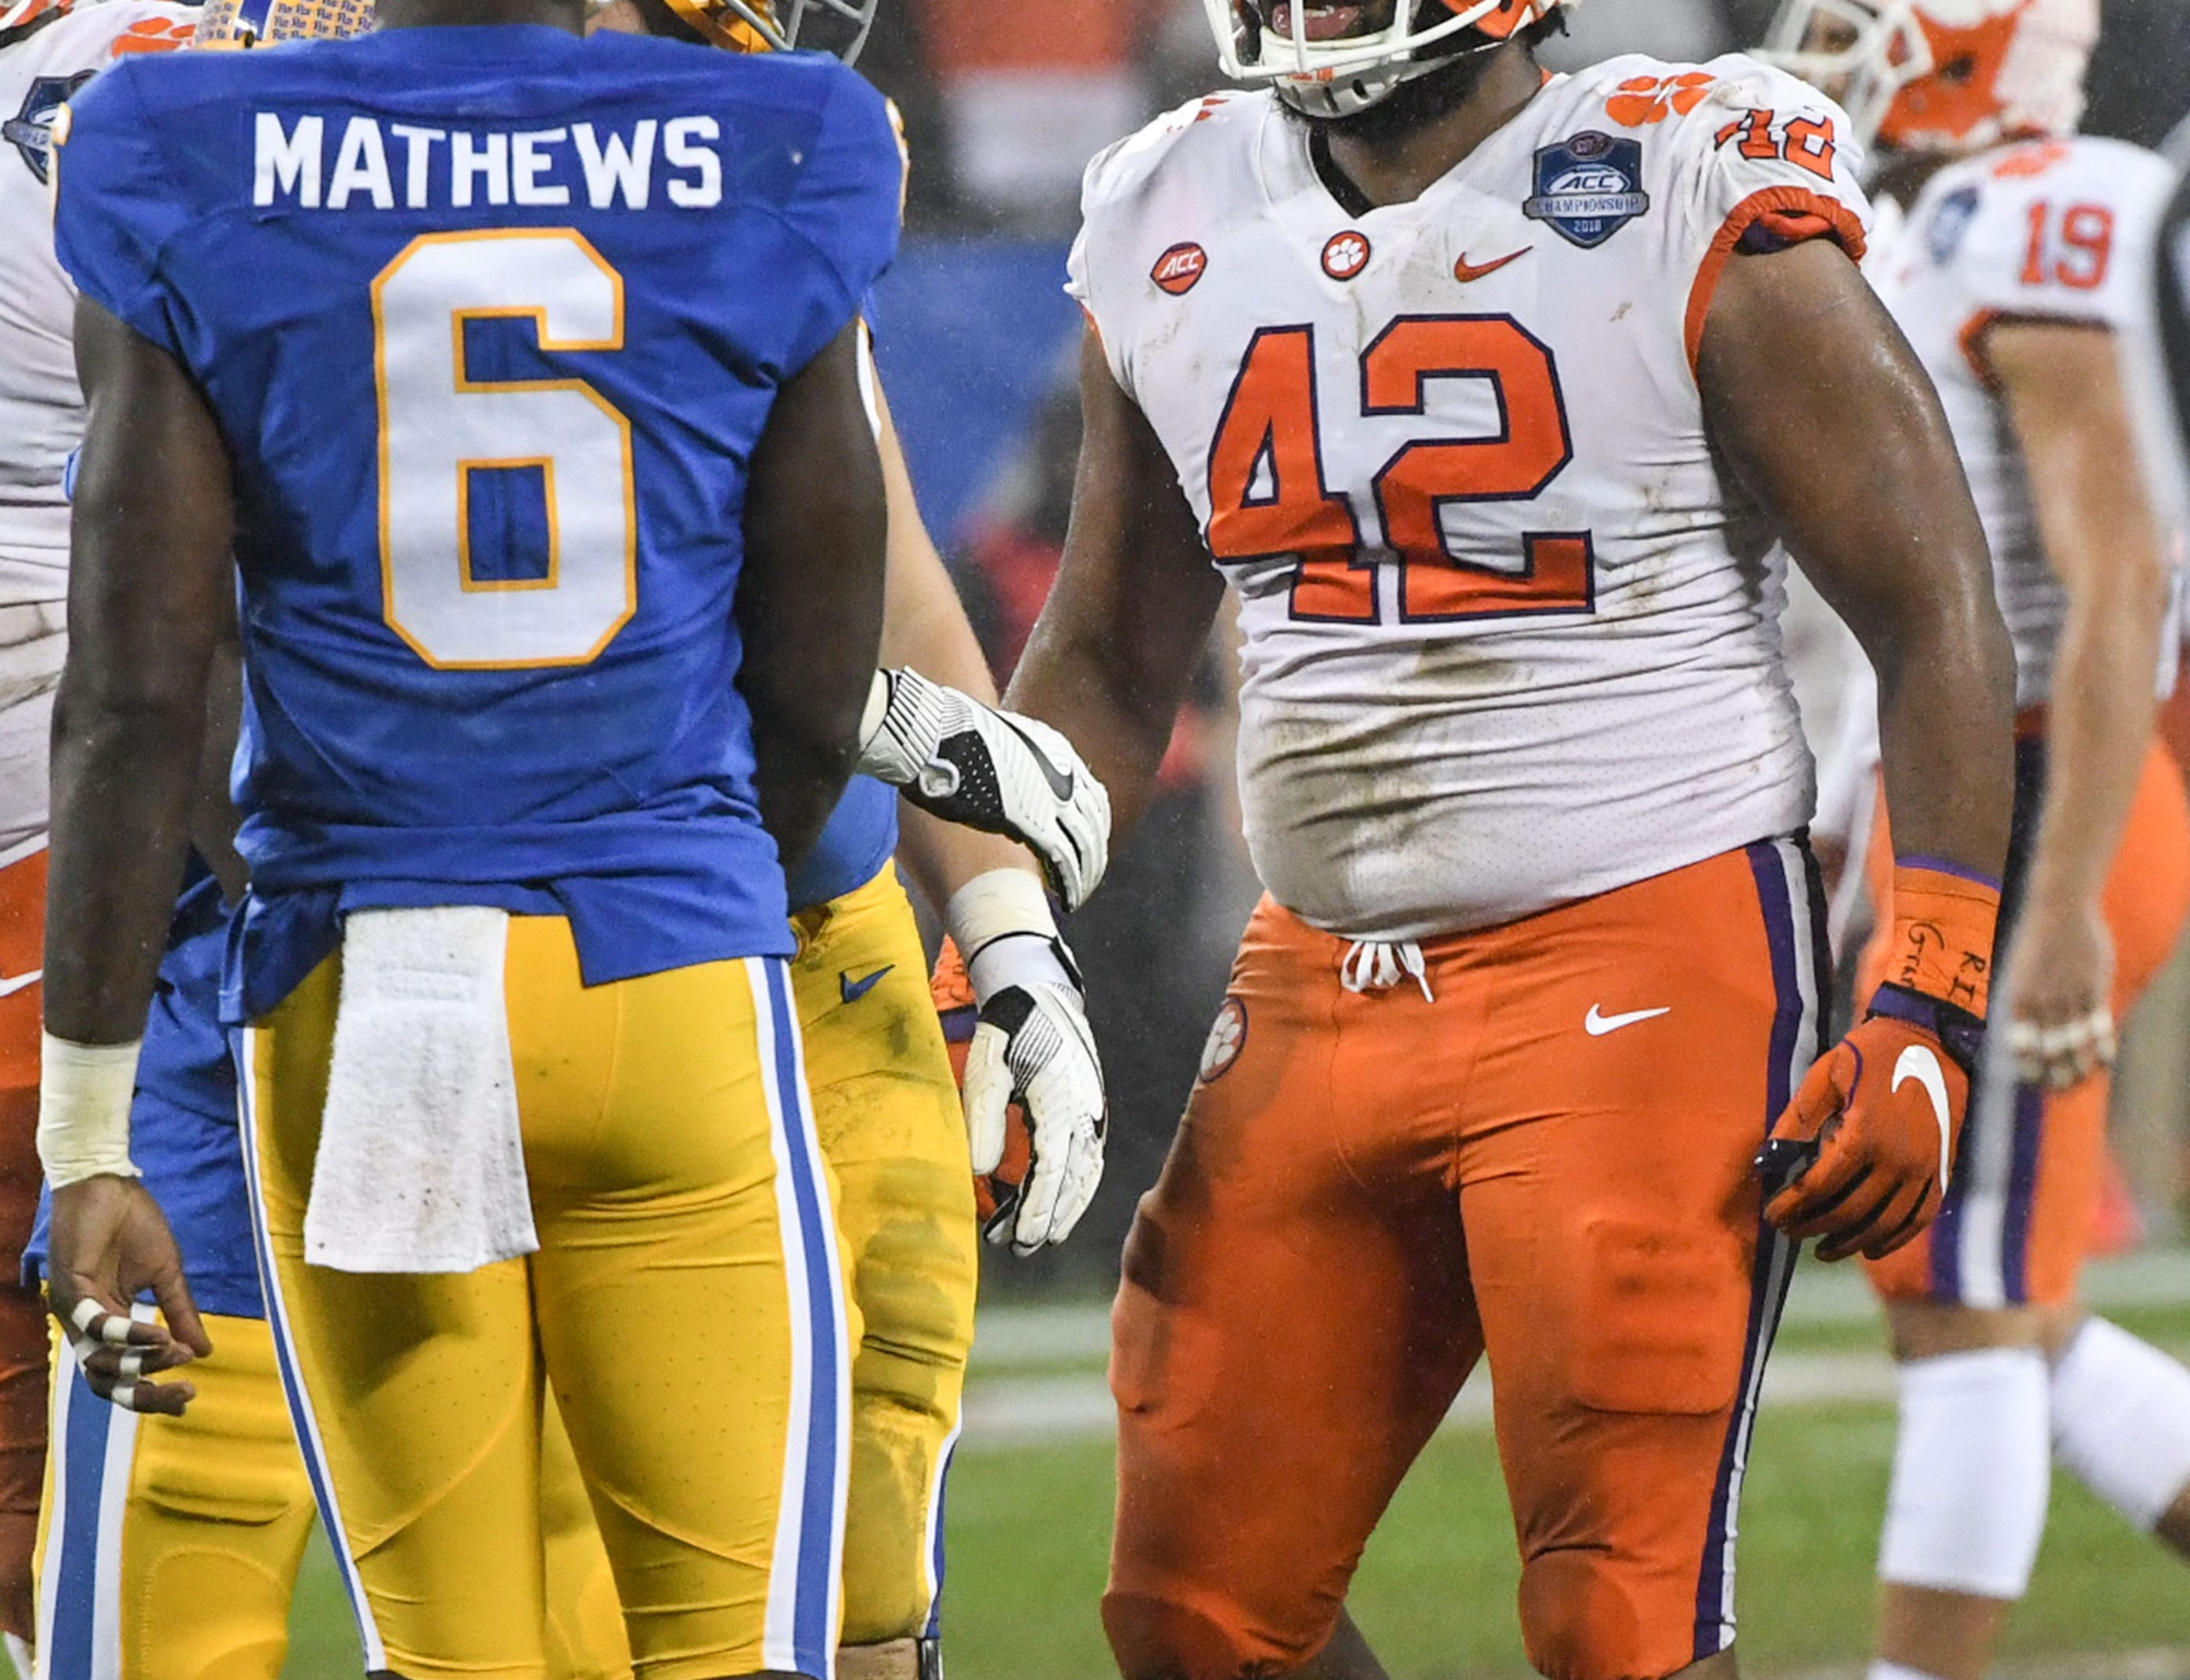 Clemson defensive lineman Christian Wilkins (42) talks to Pittsburgh players between plays during the first quarter of the Dr. Pepper ACC football championship at Bank of America Stadium in Charlotte, N.C. on Saturday, December 1, 2018.